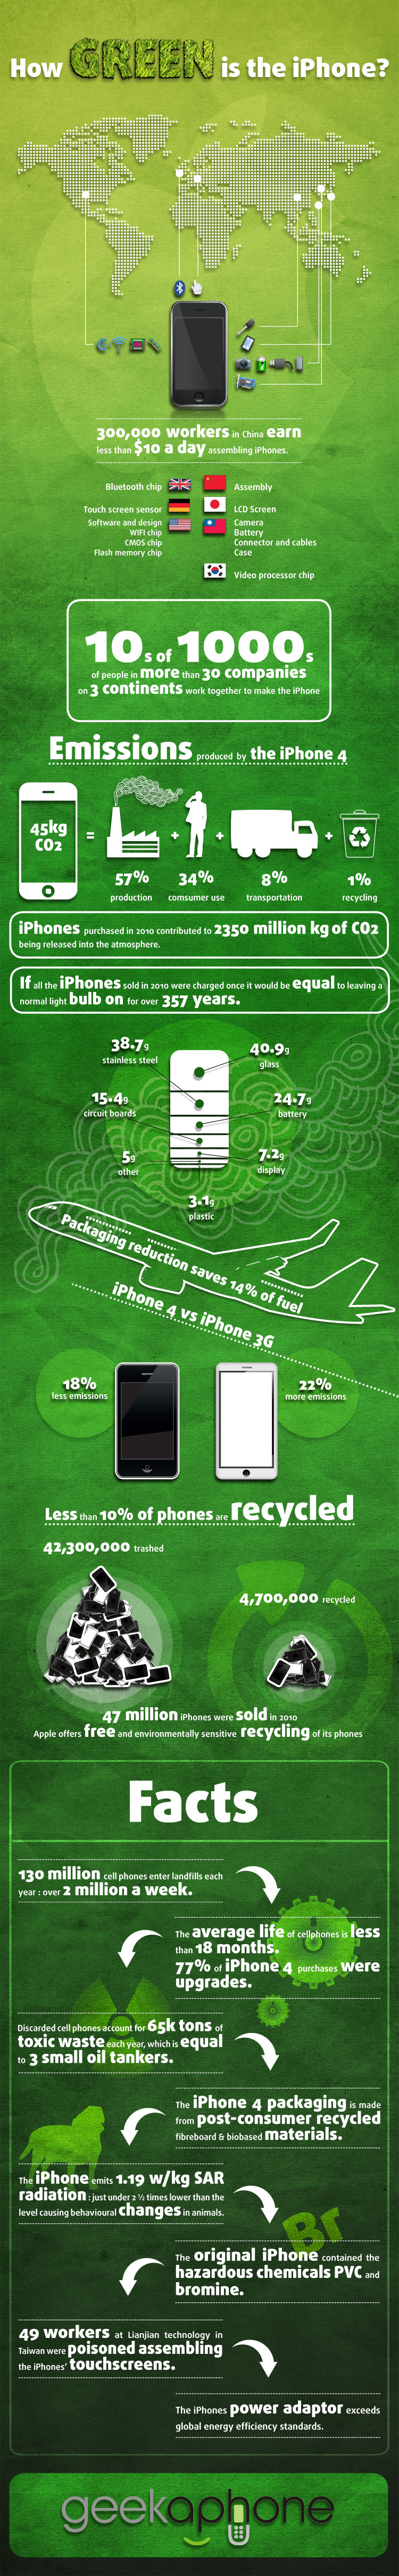 How green is the iphone?